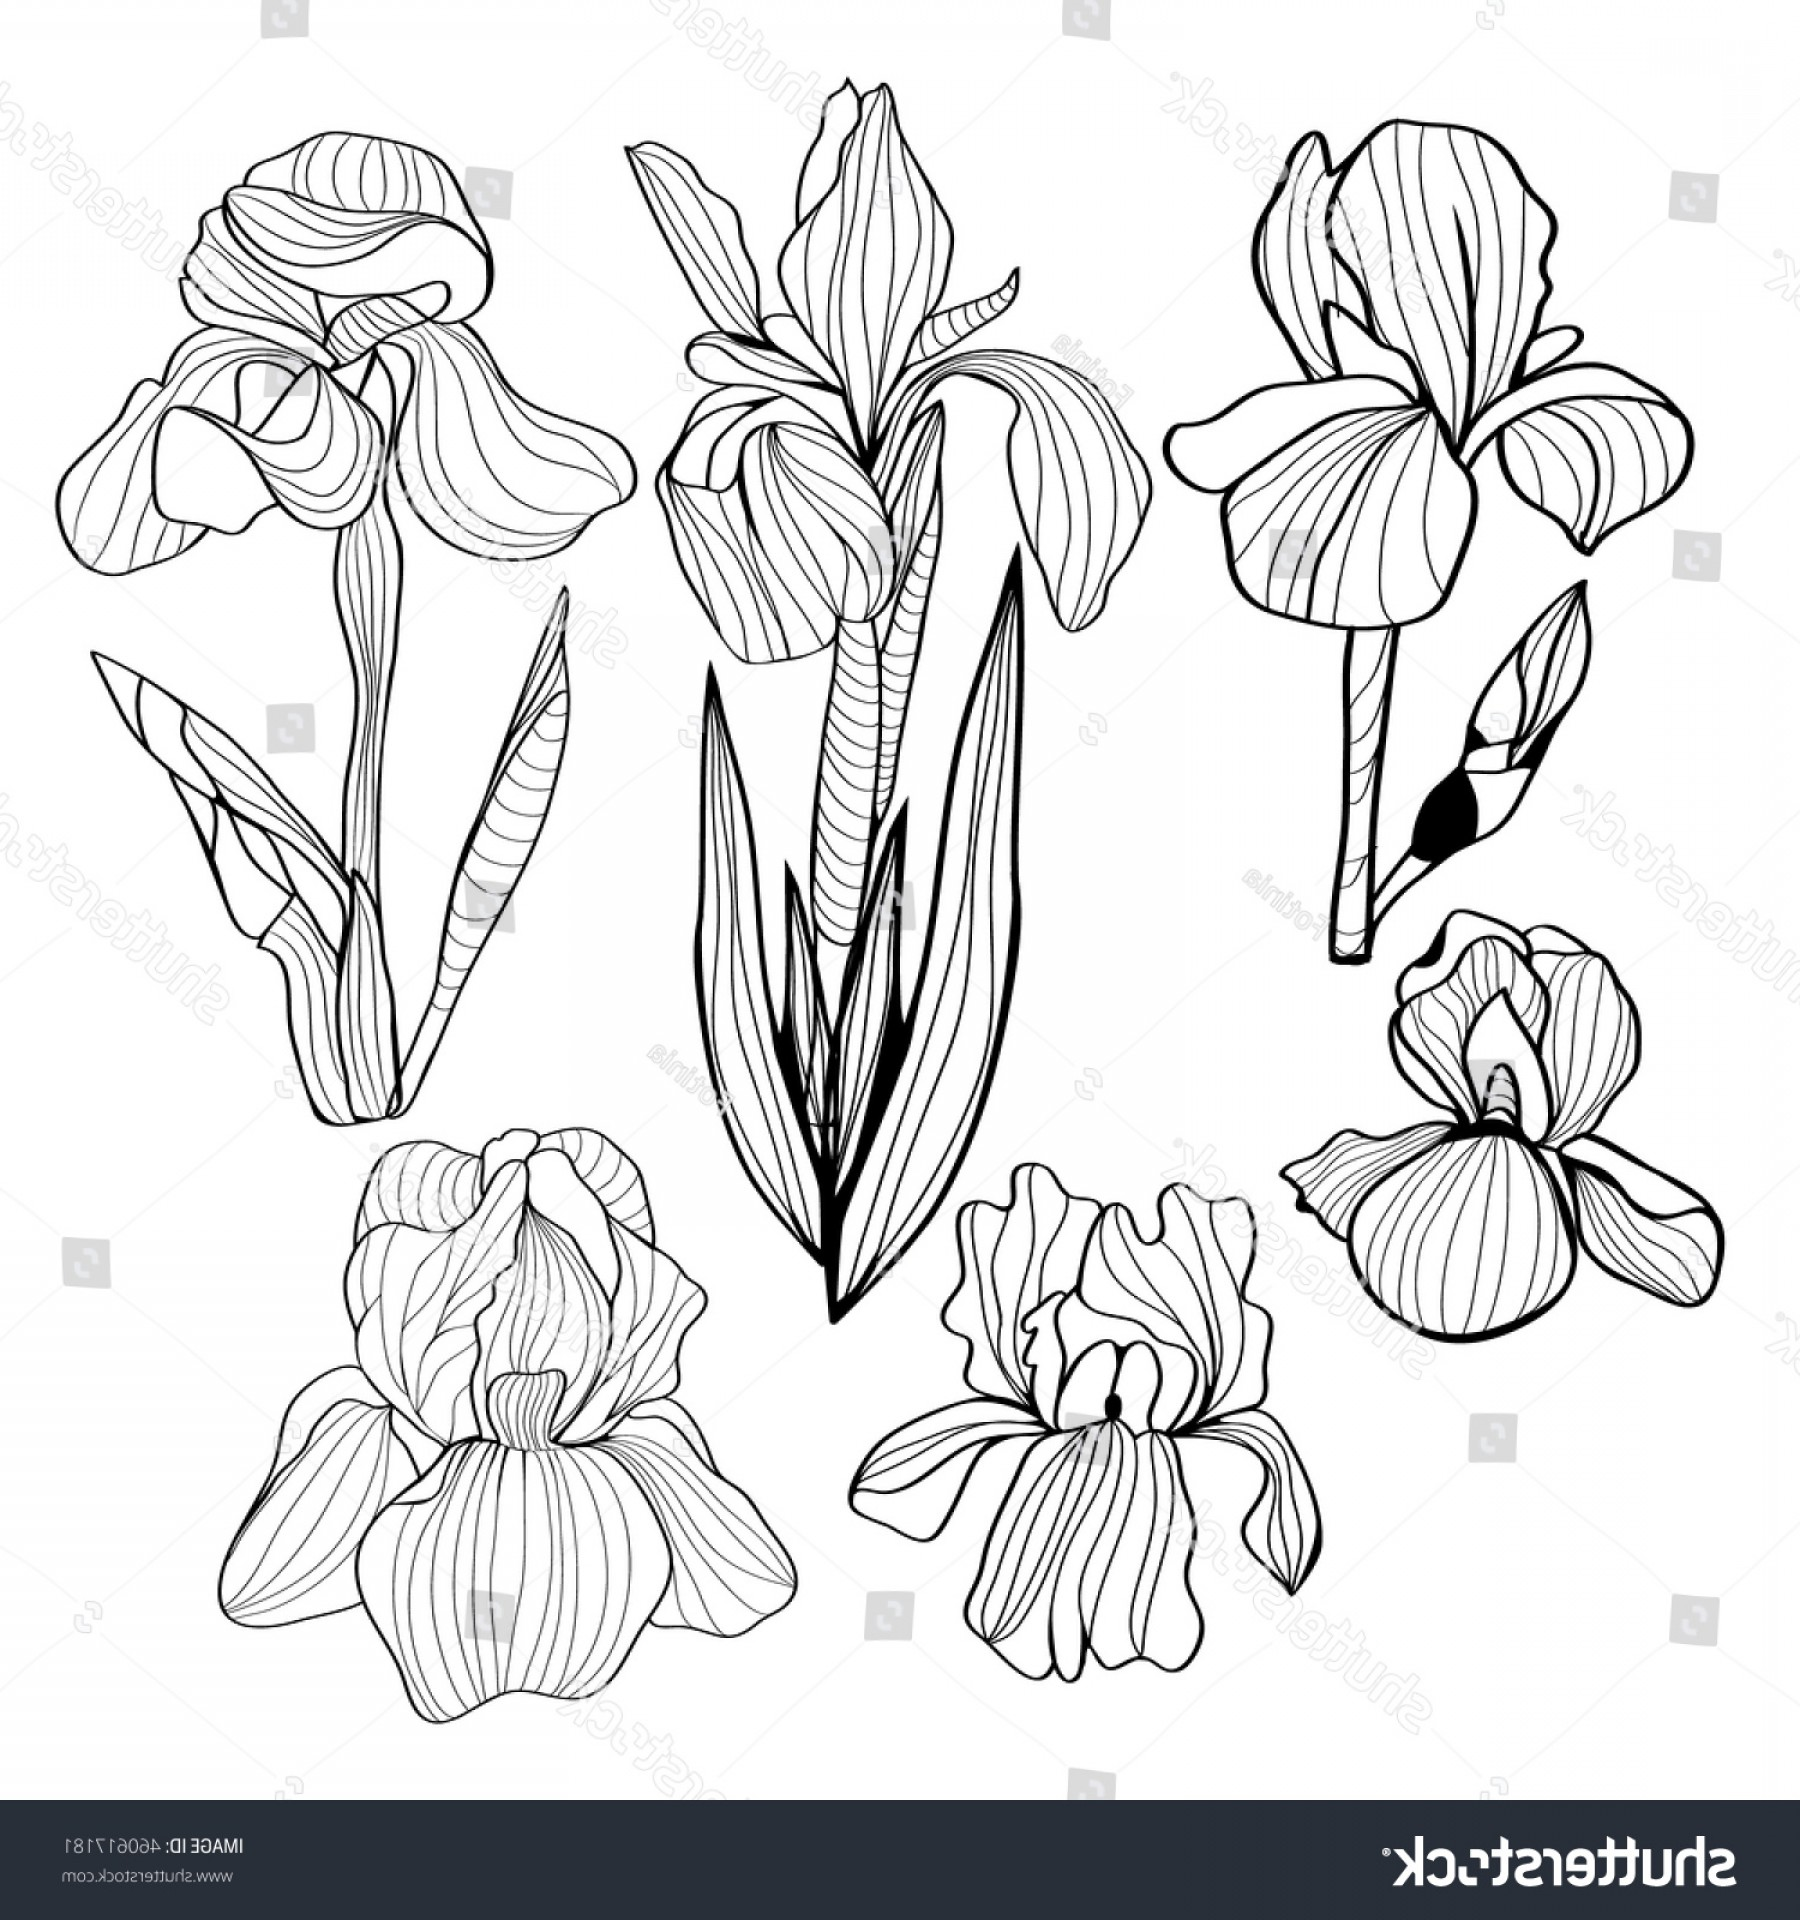 Vector Image Of A Budding Flower: Blooming Budding Iris Flowers Black White